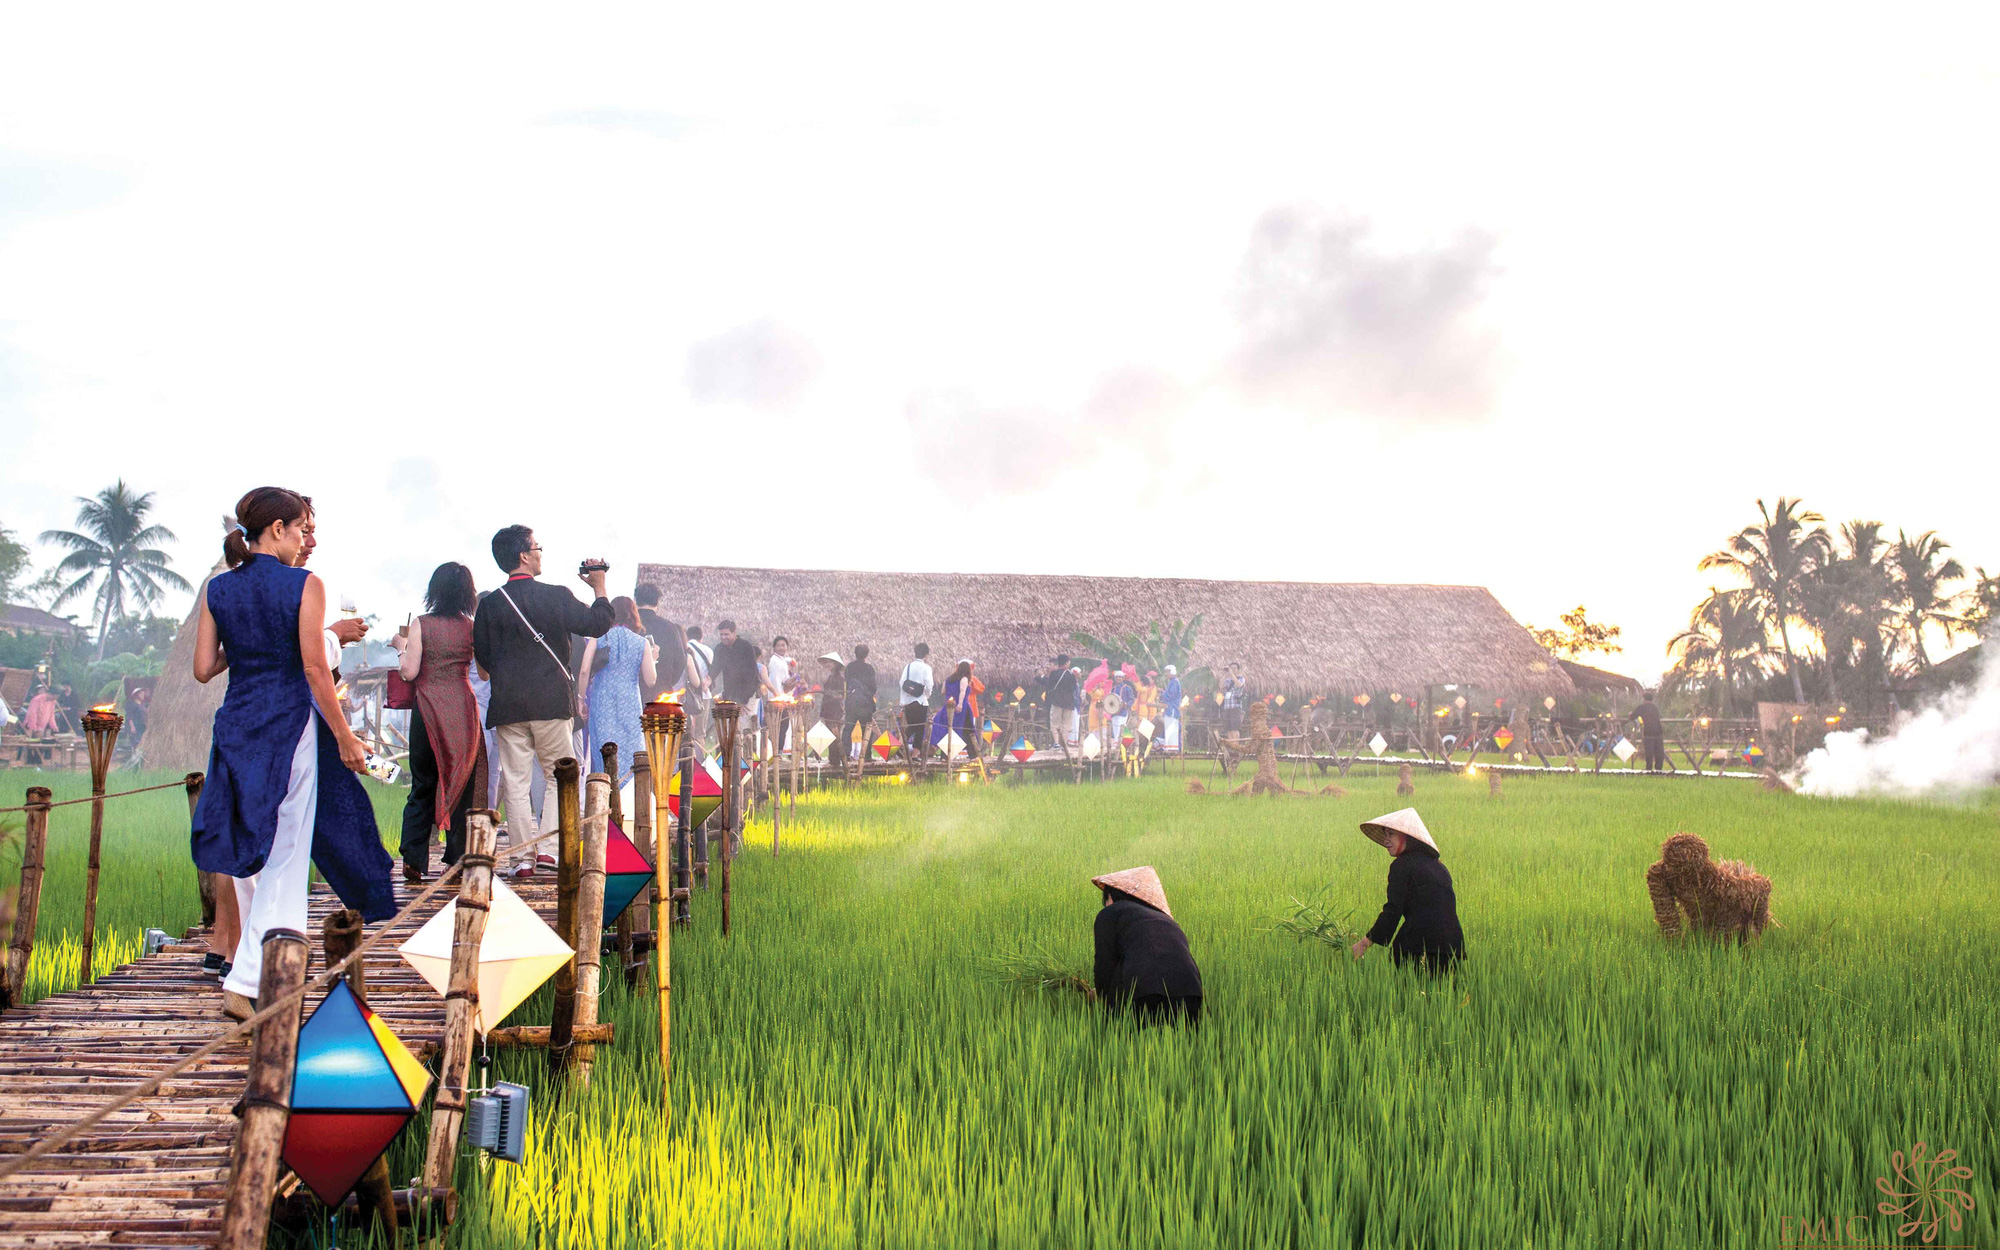 Enjoy a meal in Hoi An's famous paddies